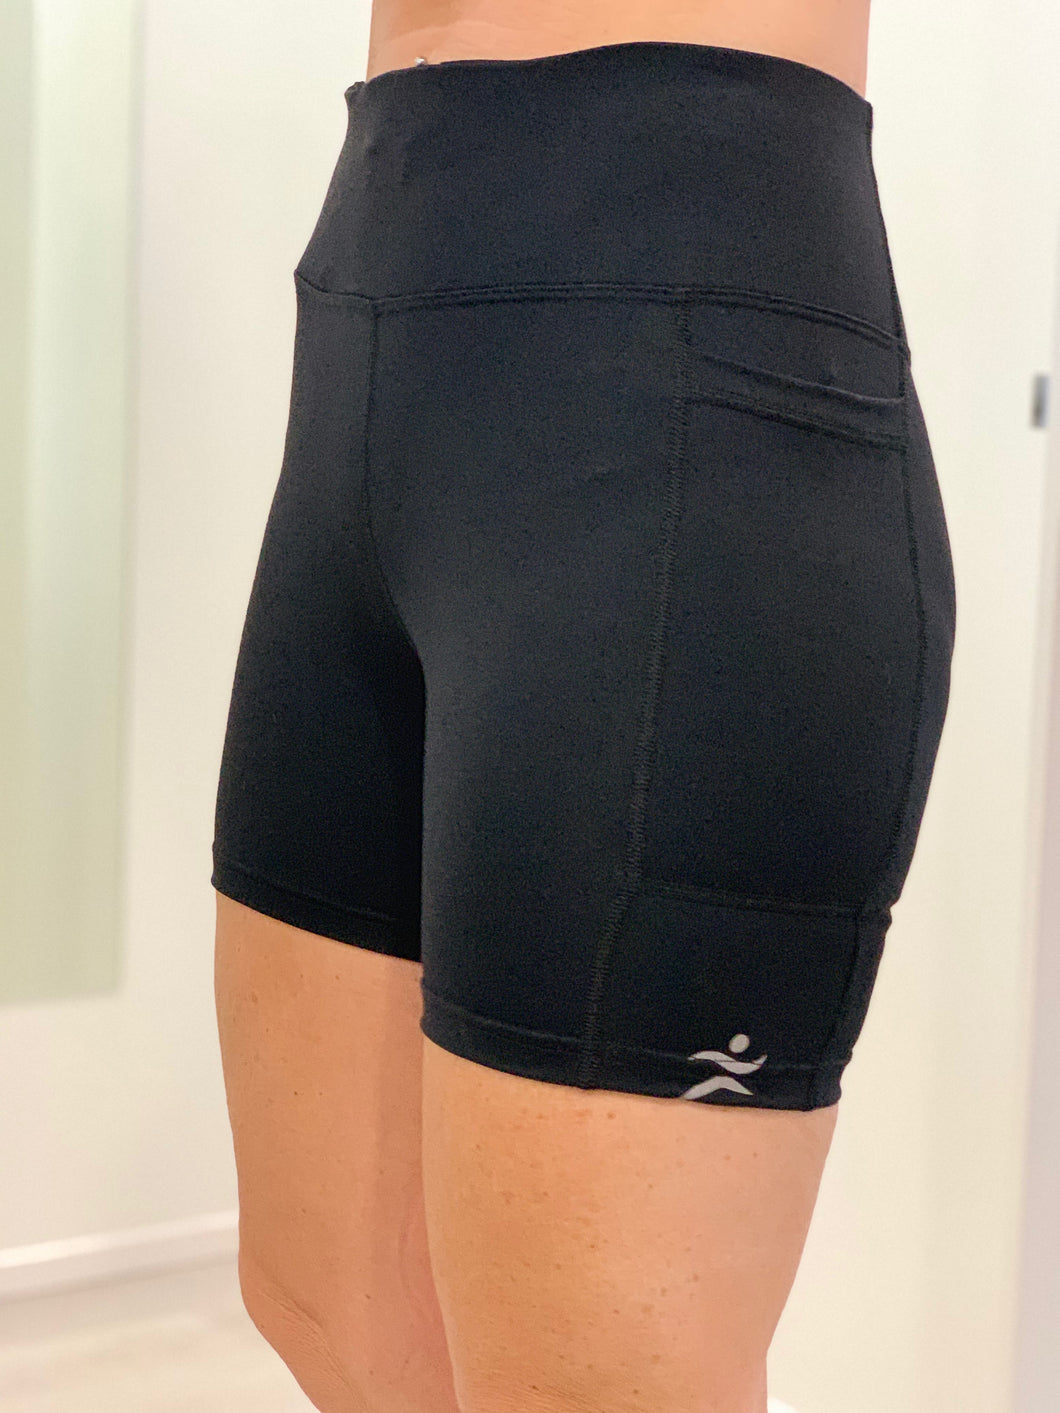 Active Bike Shorts, Black.